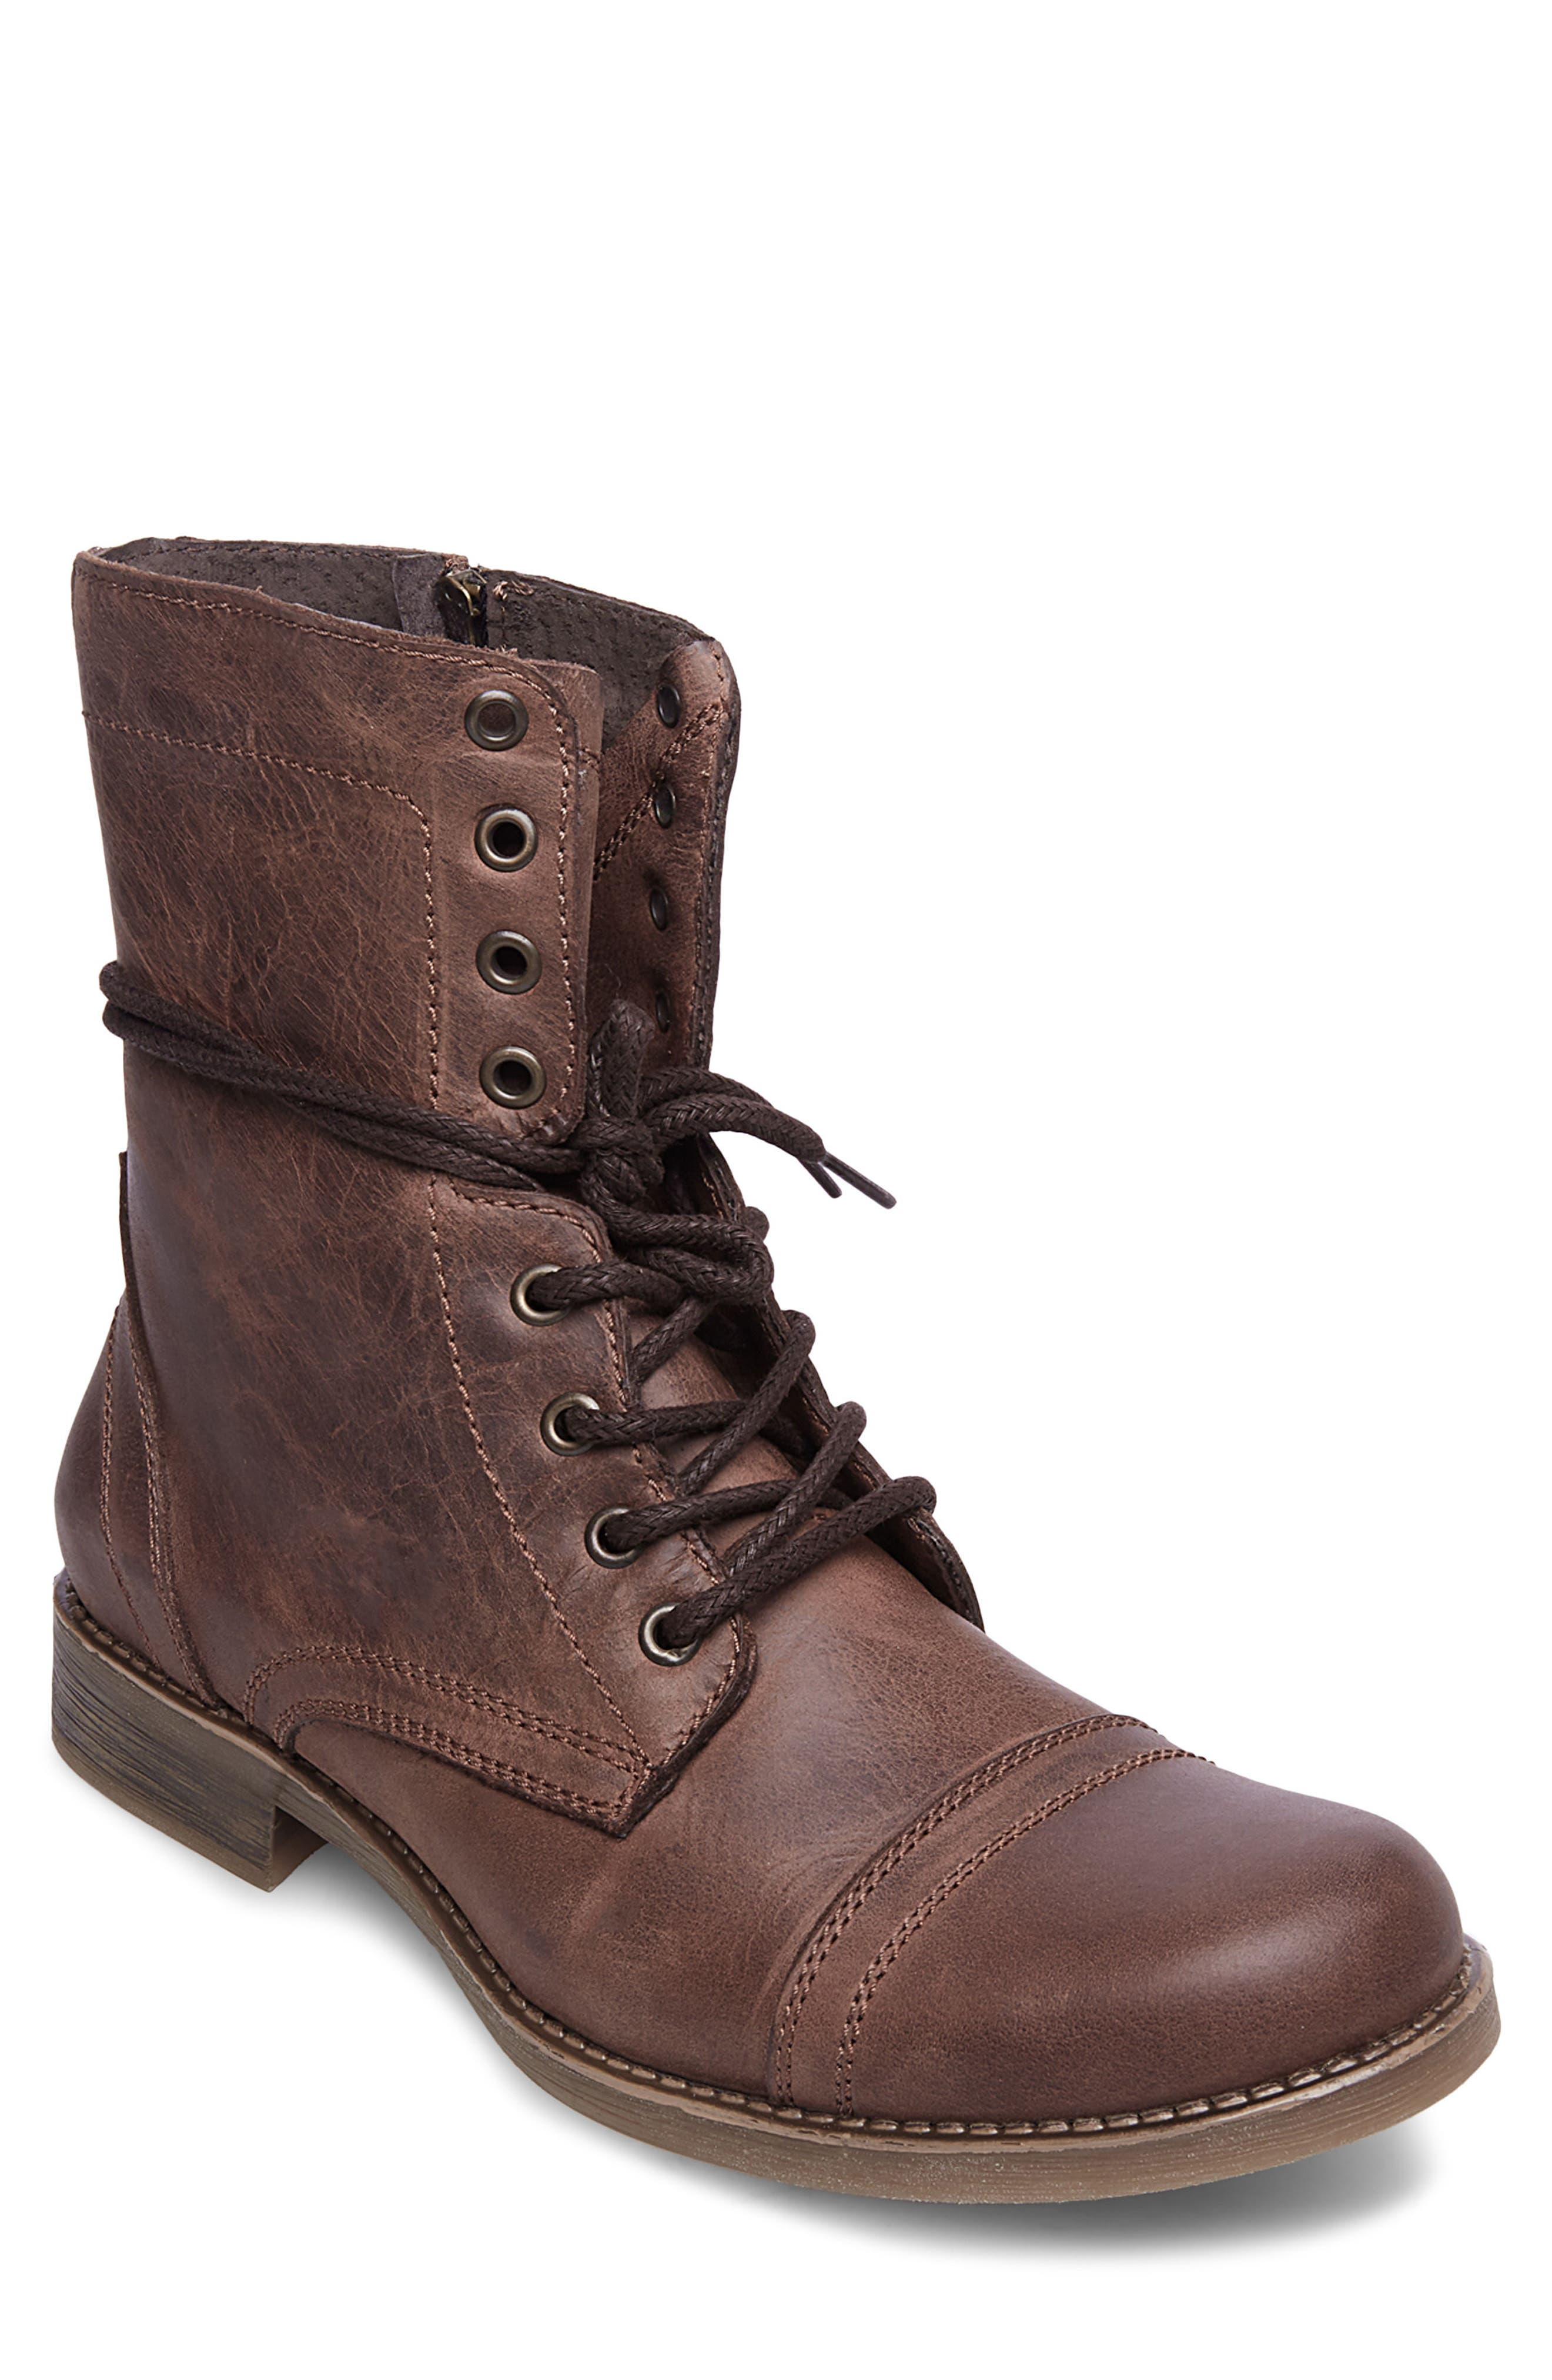 STEVE MADDEN Troopah-C Cap Toe Boot, Main, color, BROWN LEATHER